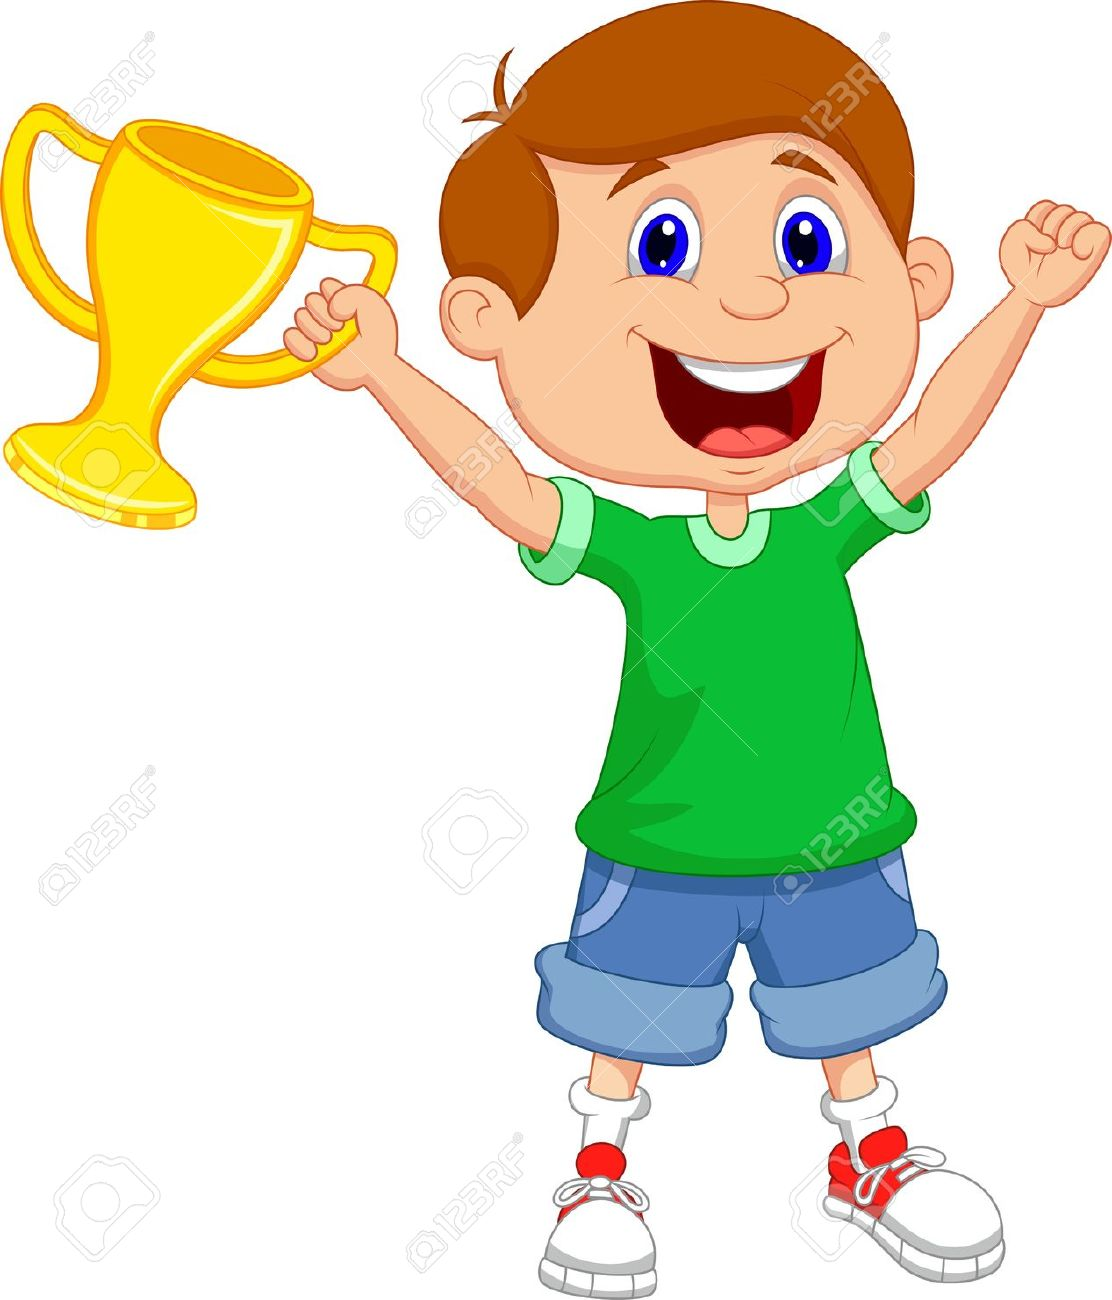 Winning clipart prize giving ceremony Clip winner%20clipart Clipart Clipart Art